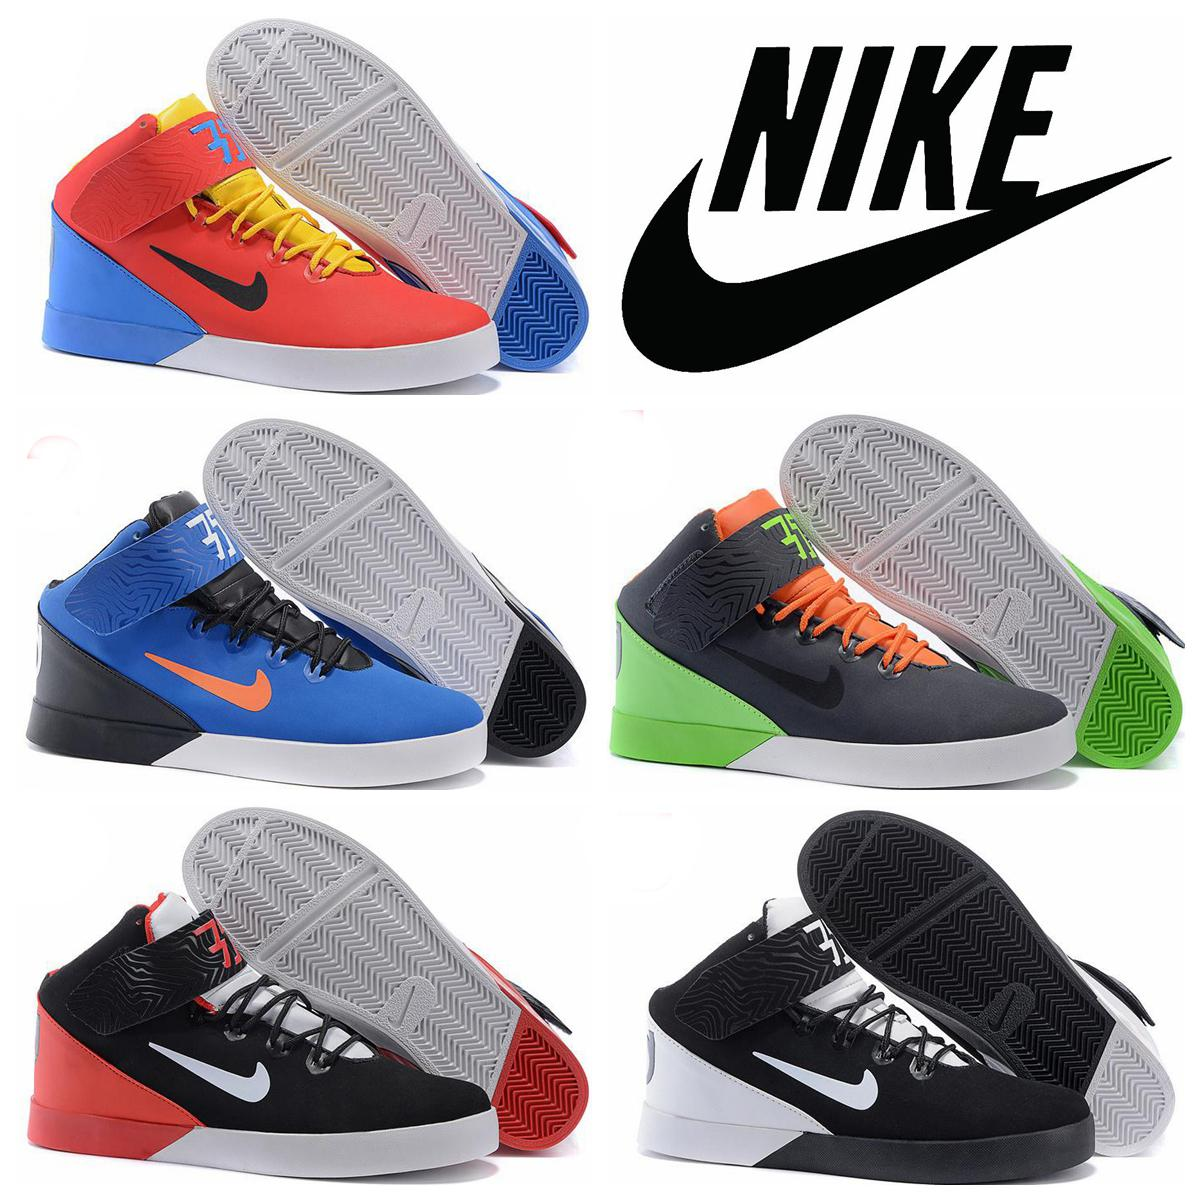 Nike Kd Vulc Casual Shoes Mens Basketball Shoes High Cut Sneakers ...